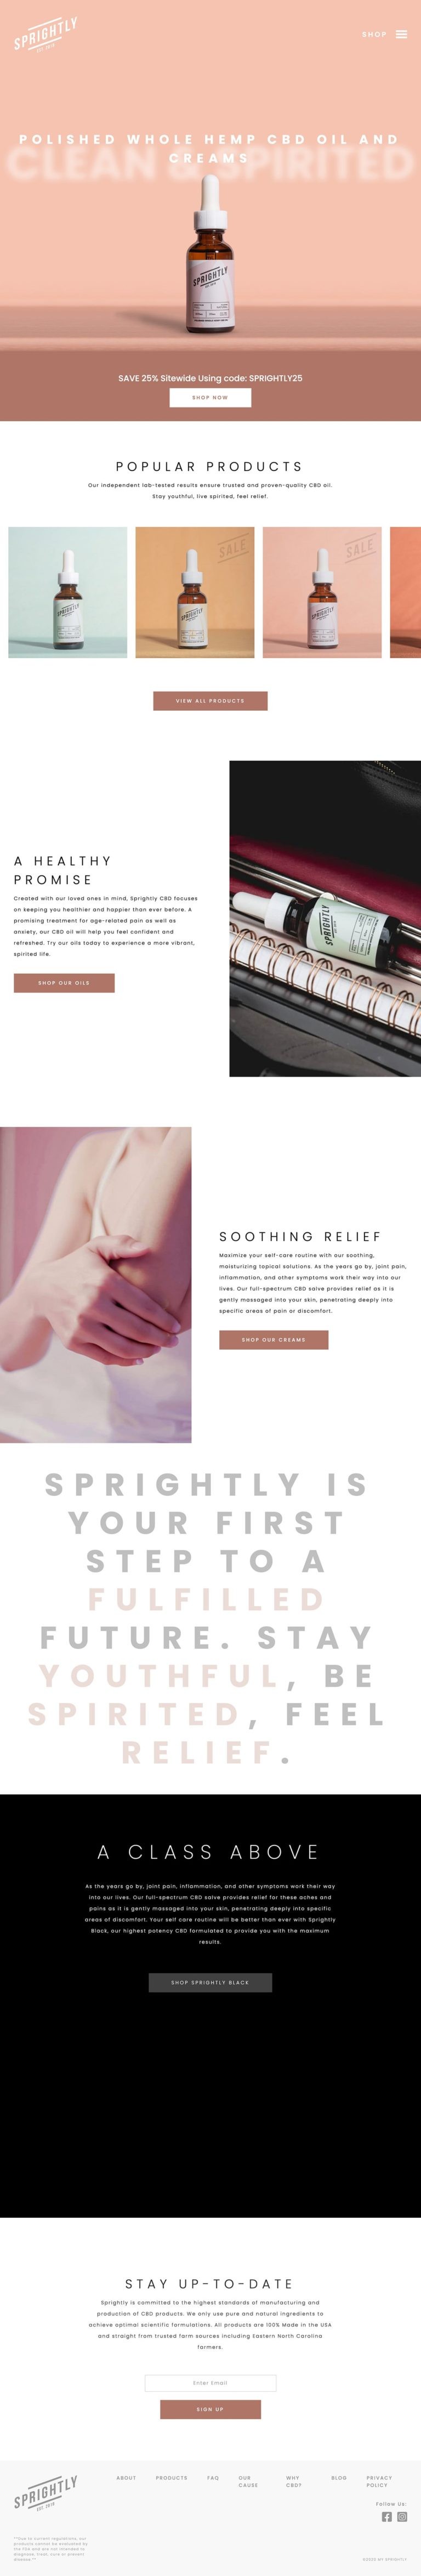 My Sprightly | Whole Hemp CBD Oil and Creams